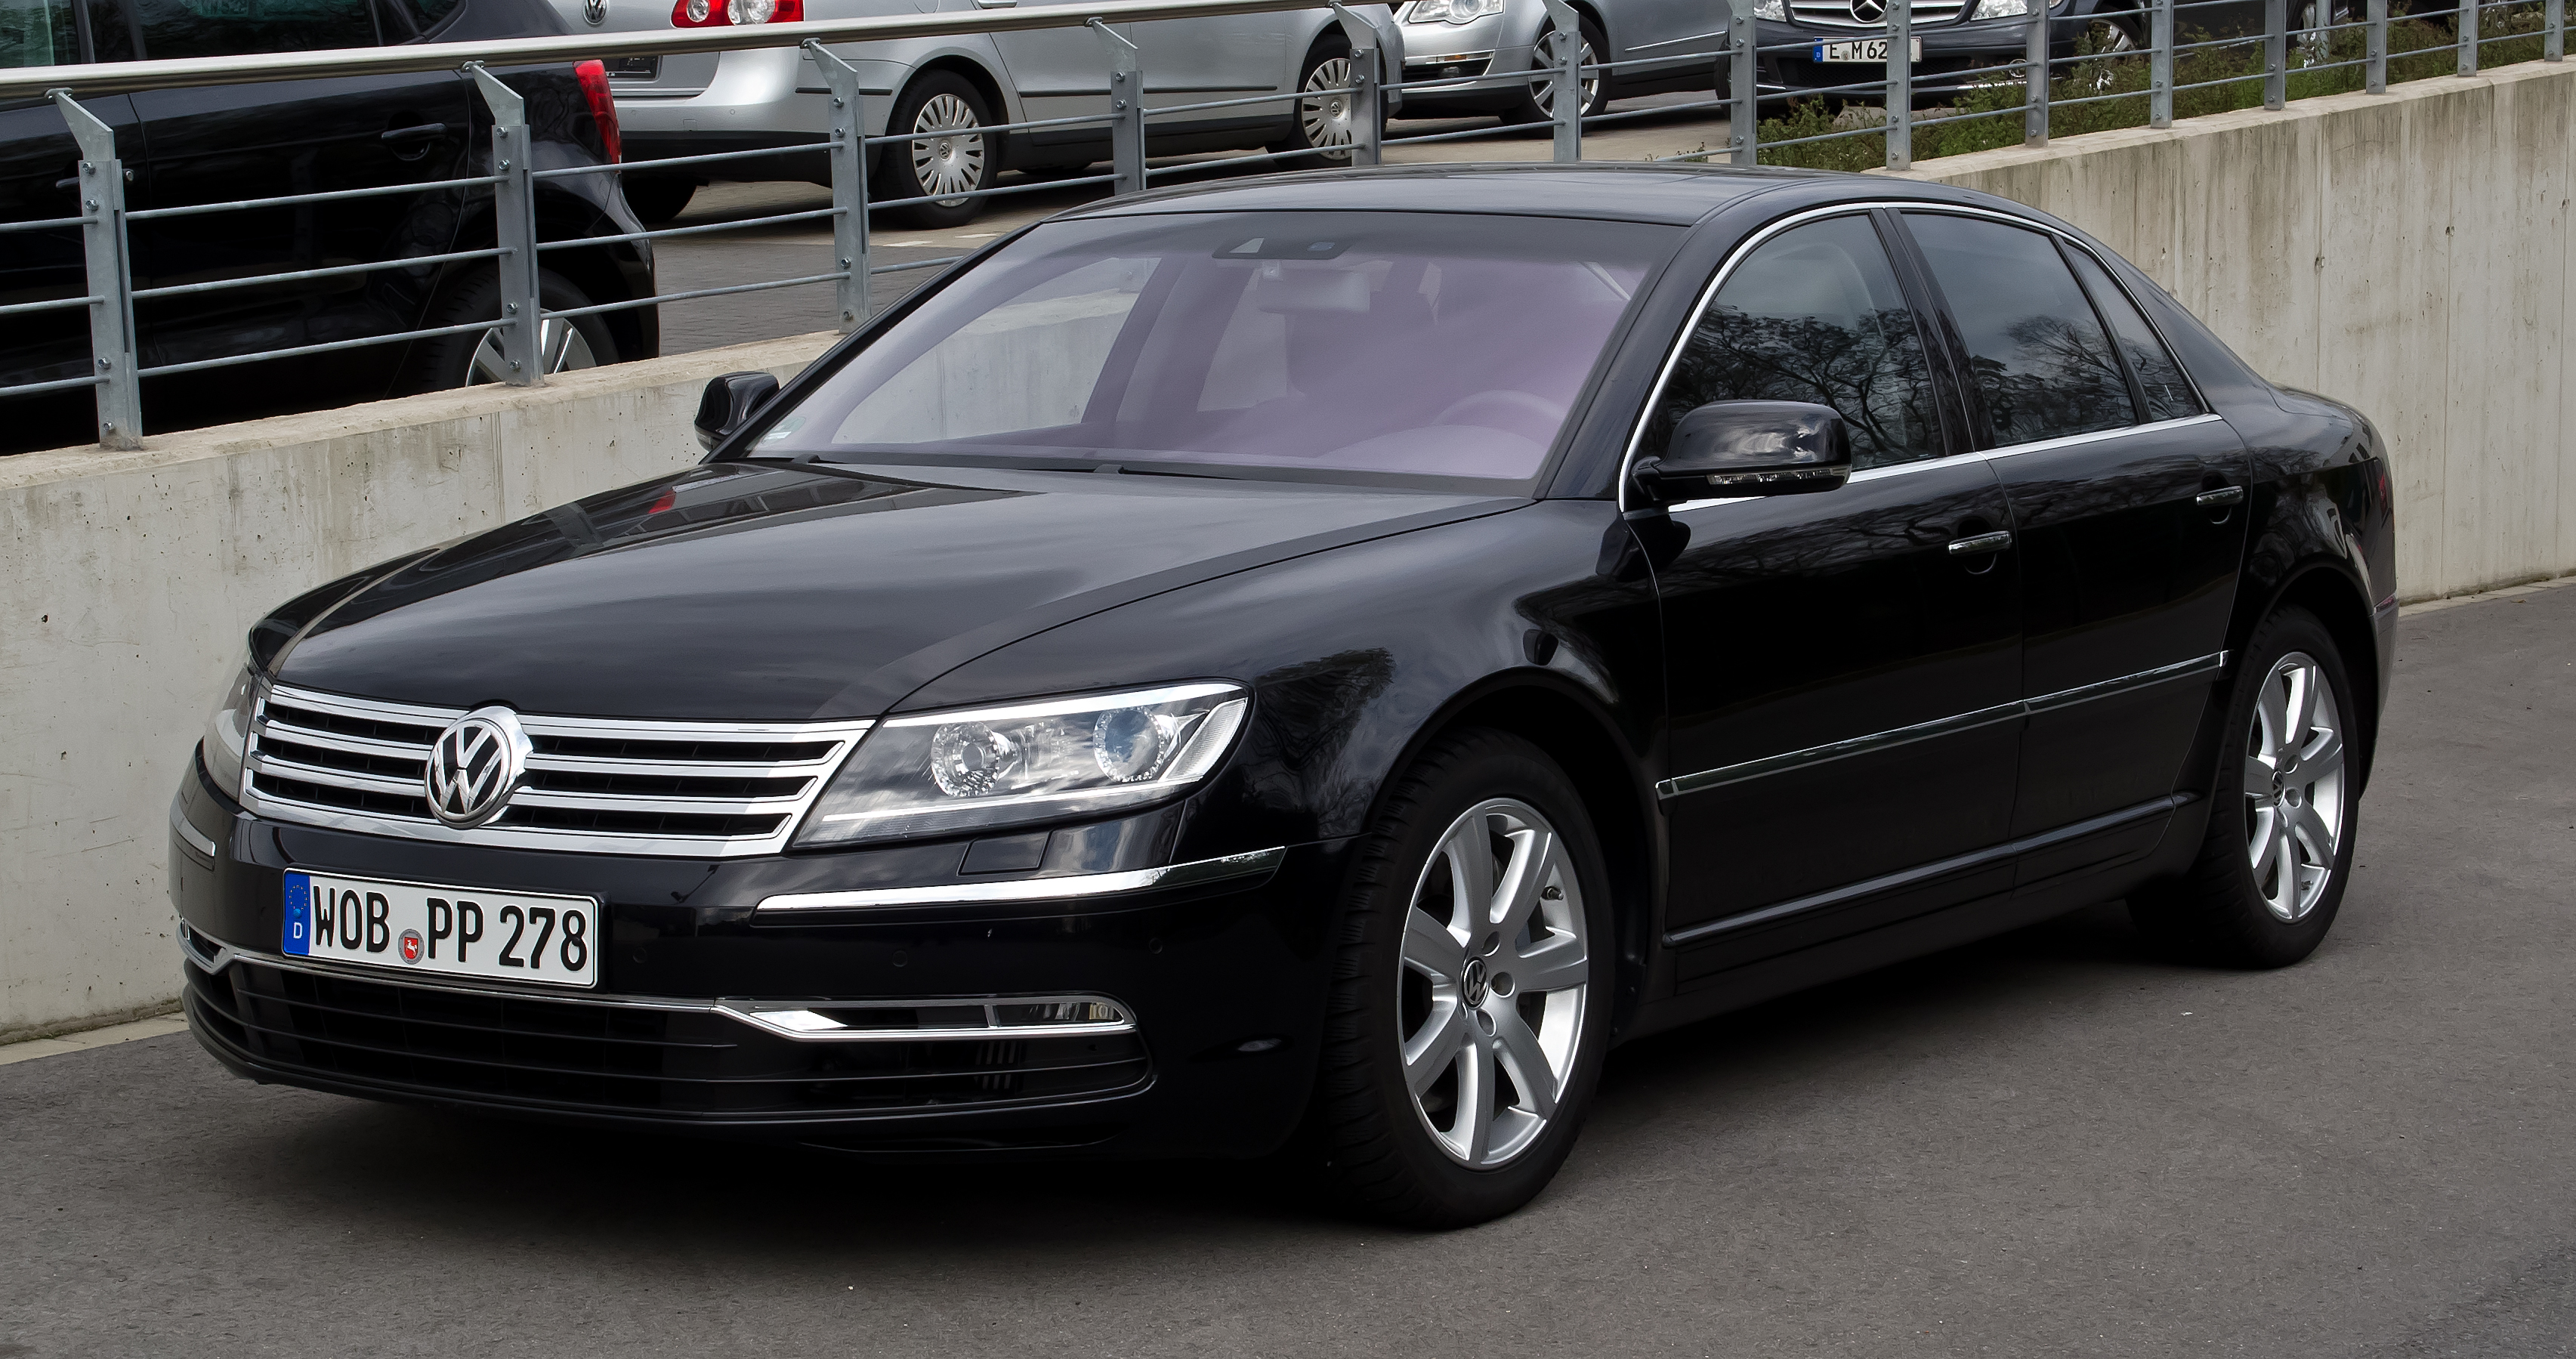 25000 moreover 2013 Cc as well 159 sw 2 0 jtdm 16v ti sports  new  leather  farbnavi  2011 together with File VW Golf Variant TDI rear also File VW Phaeton 3 0 V6 TDI 4MOTION  2  Facelift   E2 80 93 Frontansicht  1  April 2012  Essen. on 2012 volkswagen passat tdi